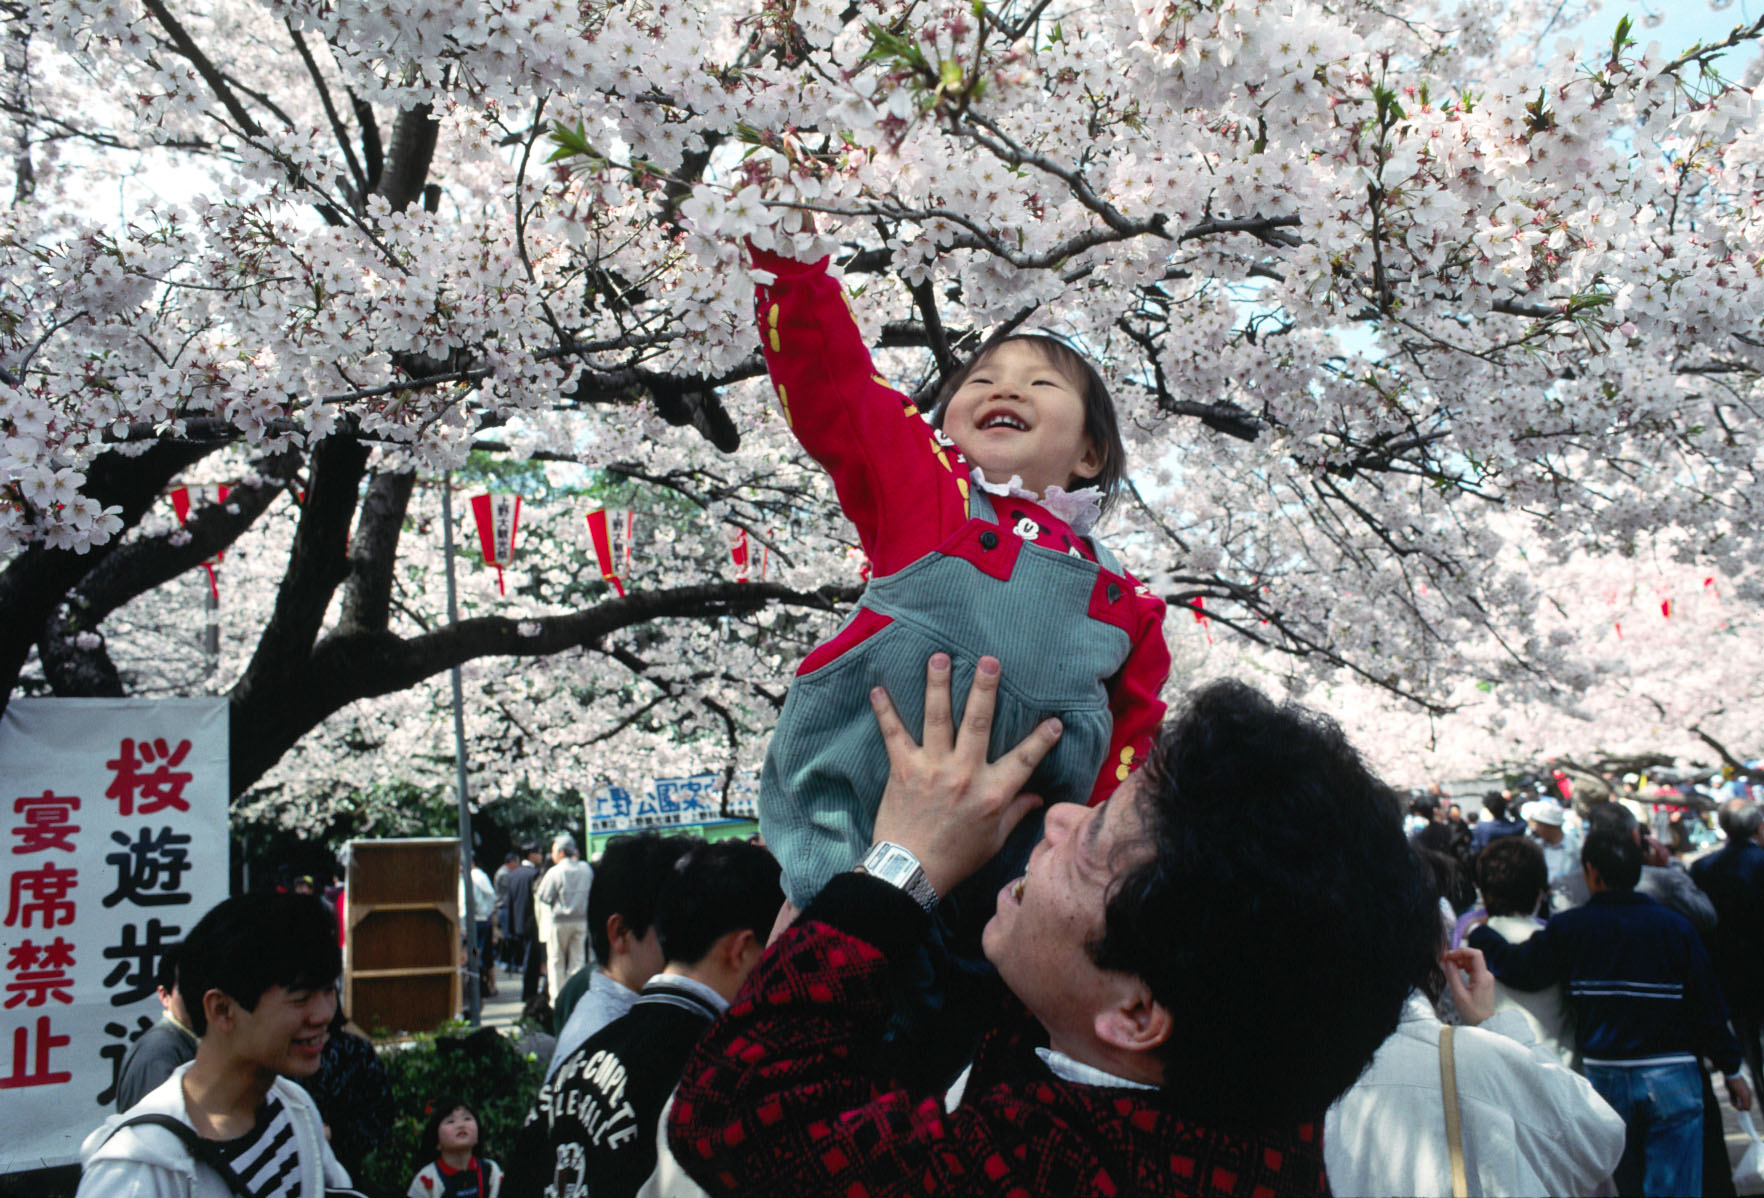 http://upload.wikimedia.org/wikipedia/commons/e/e1/UenoParkHanami.jpg